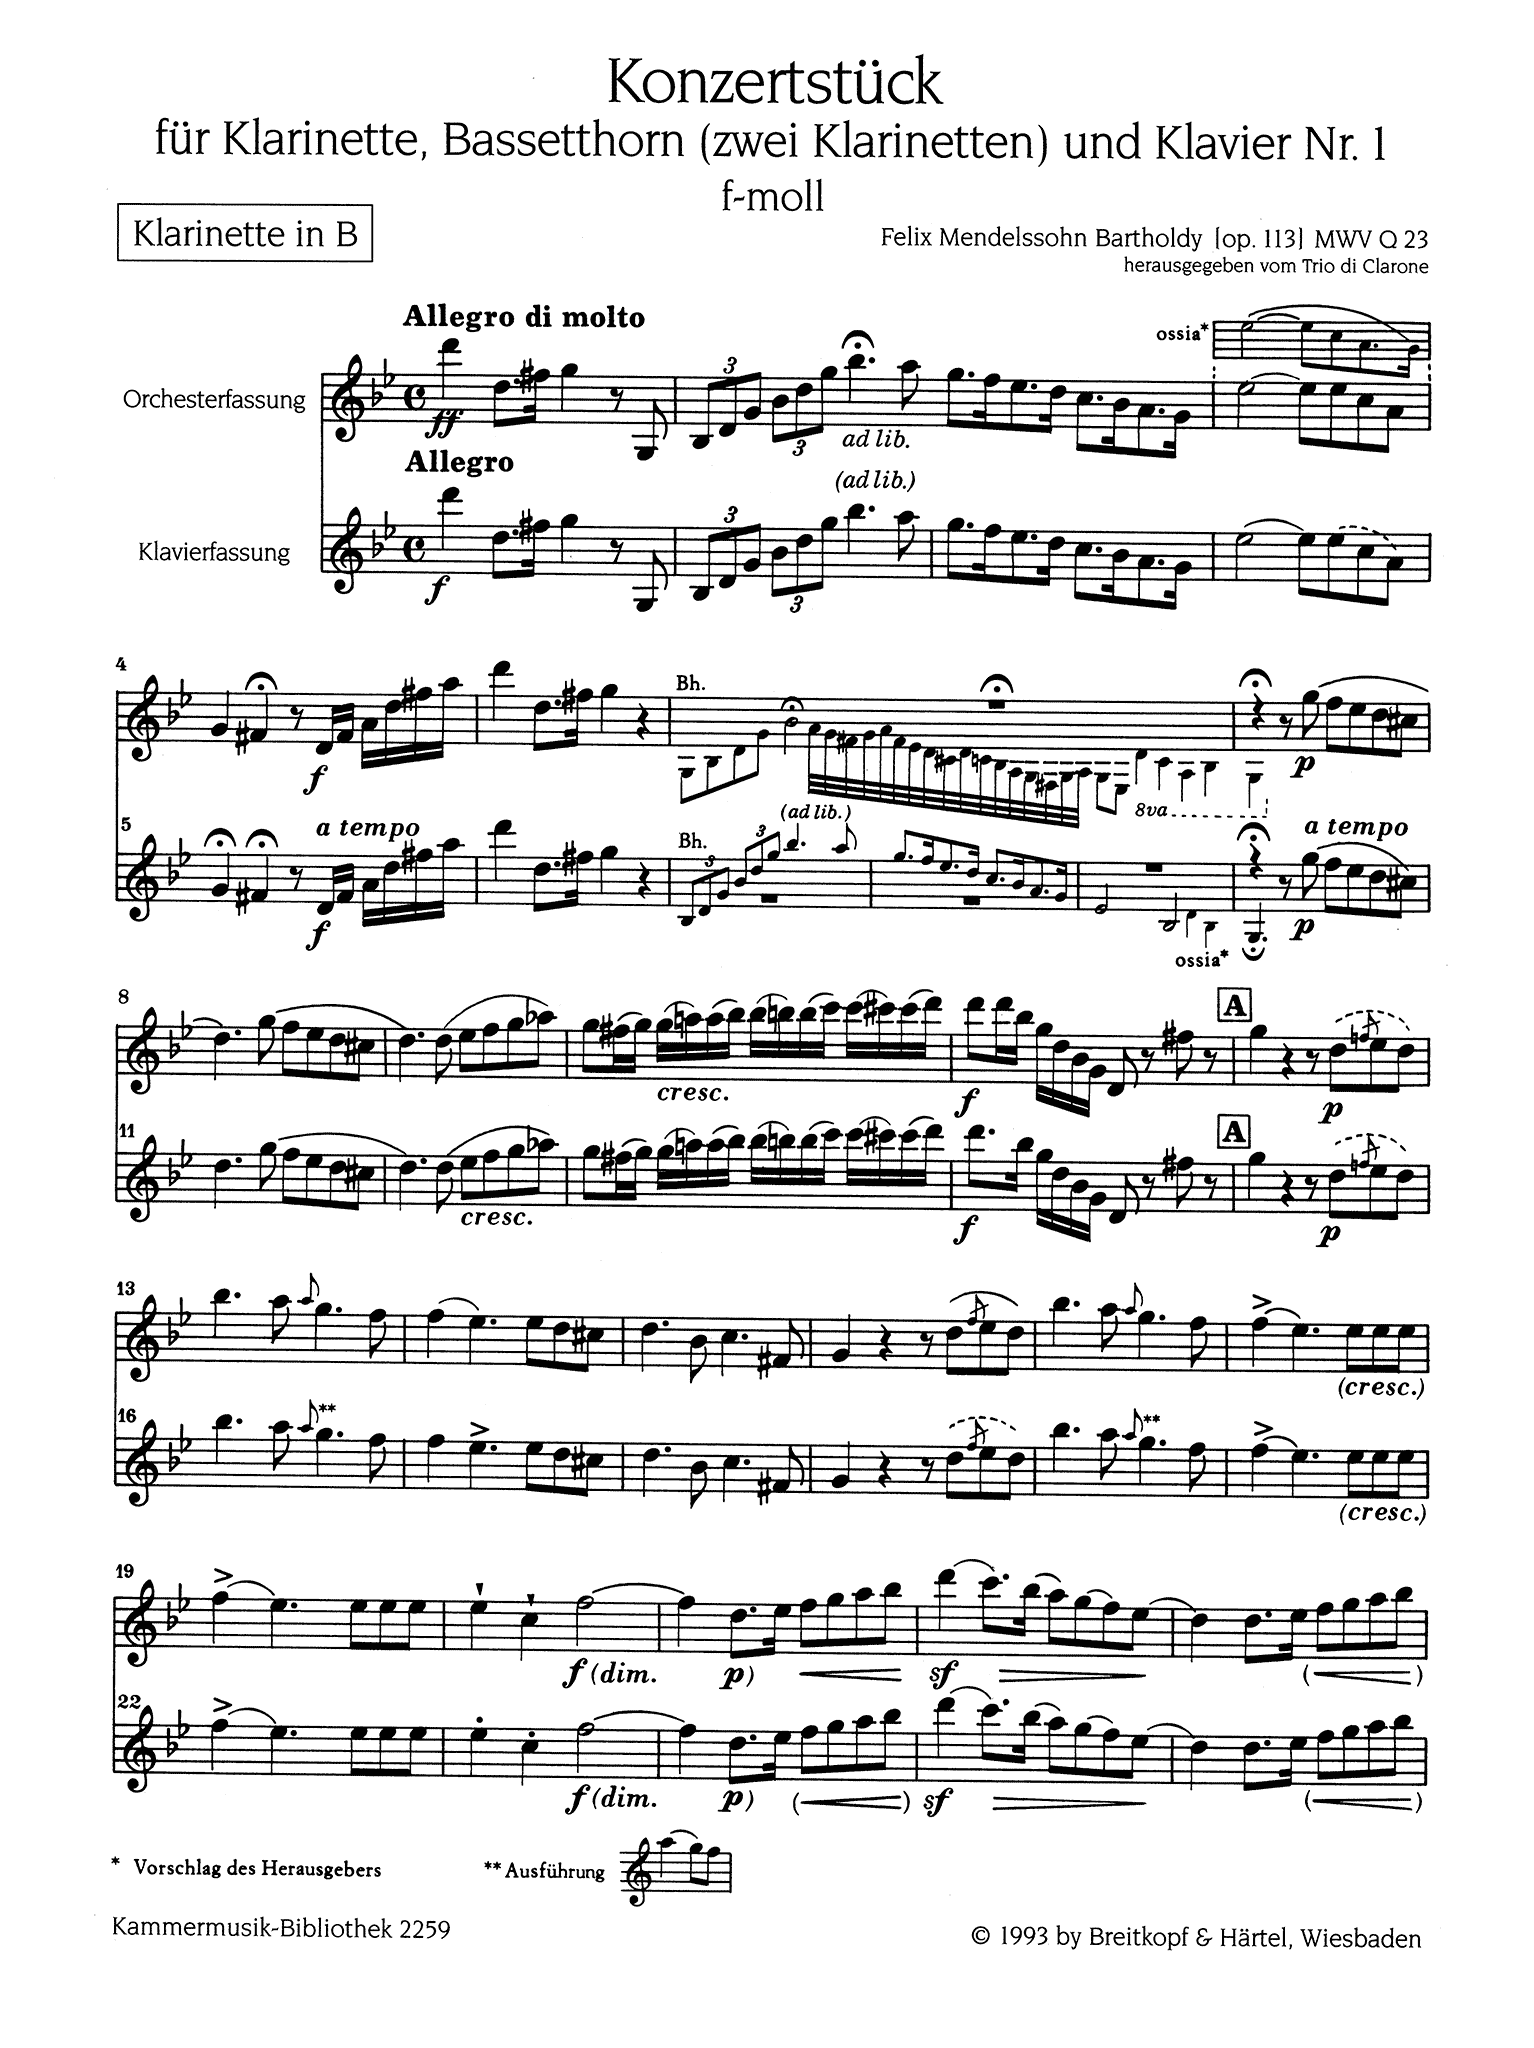 Concertpiece No. 1 in F Minor, Op. 113 First Clarinet solo part